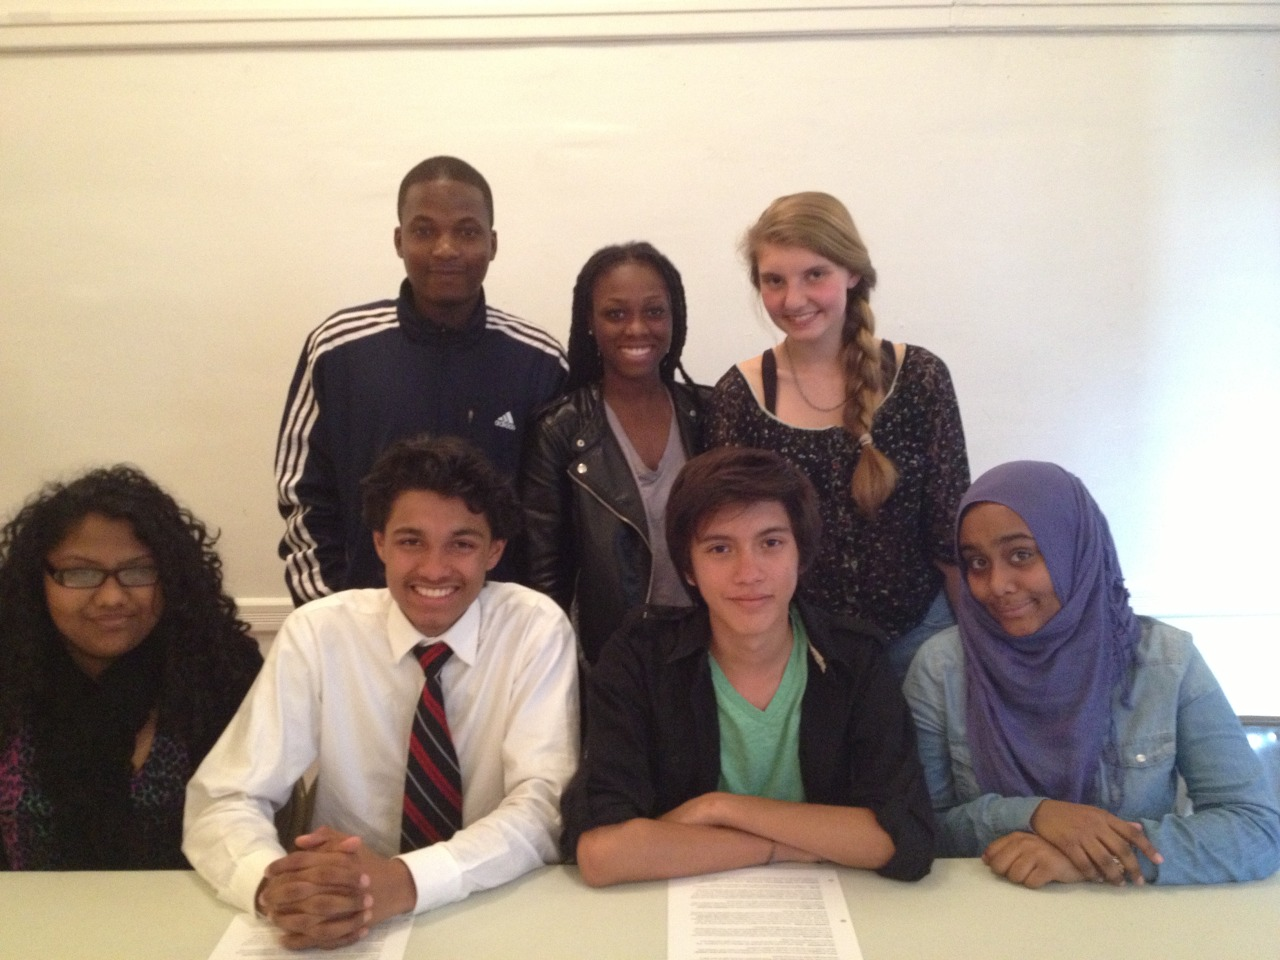 Hard at work planning NYC's first ever Youth-Led Mayoral Debate!